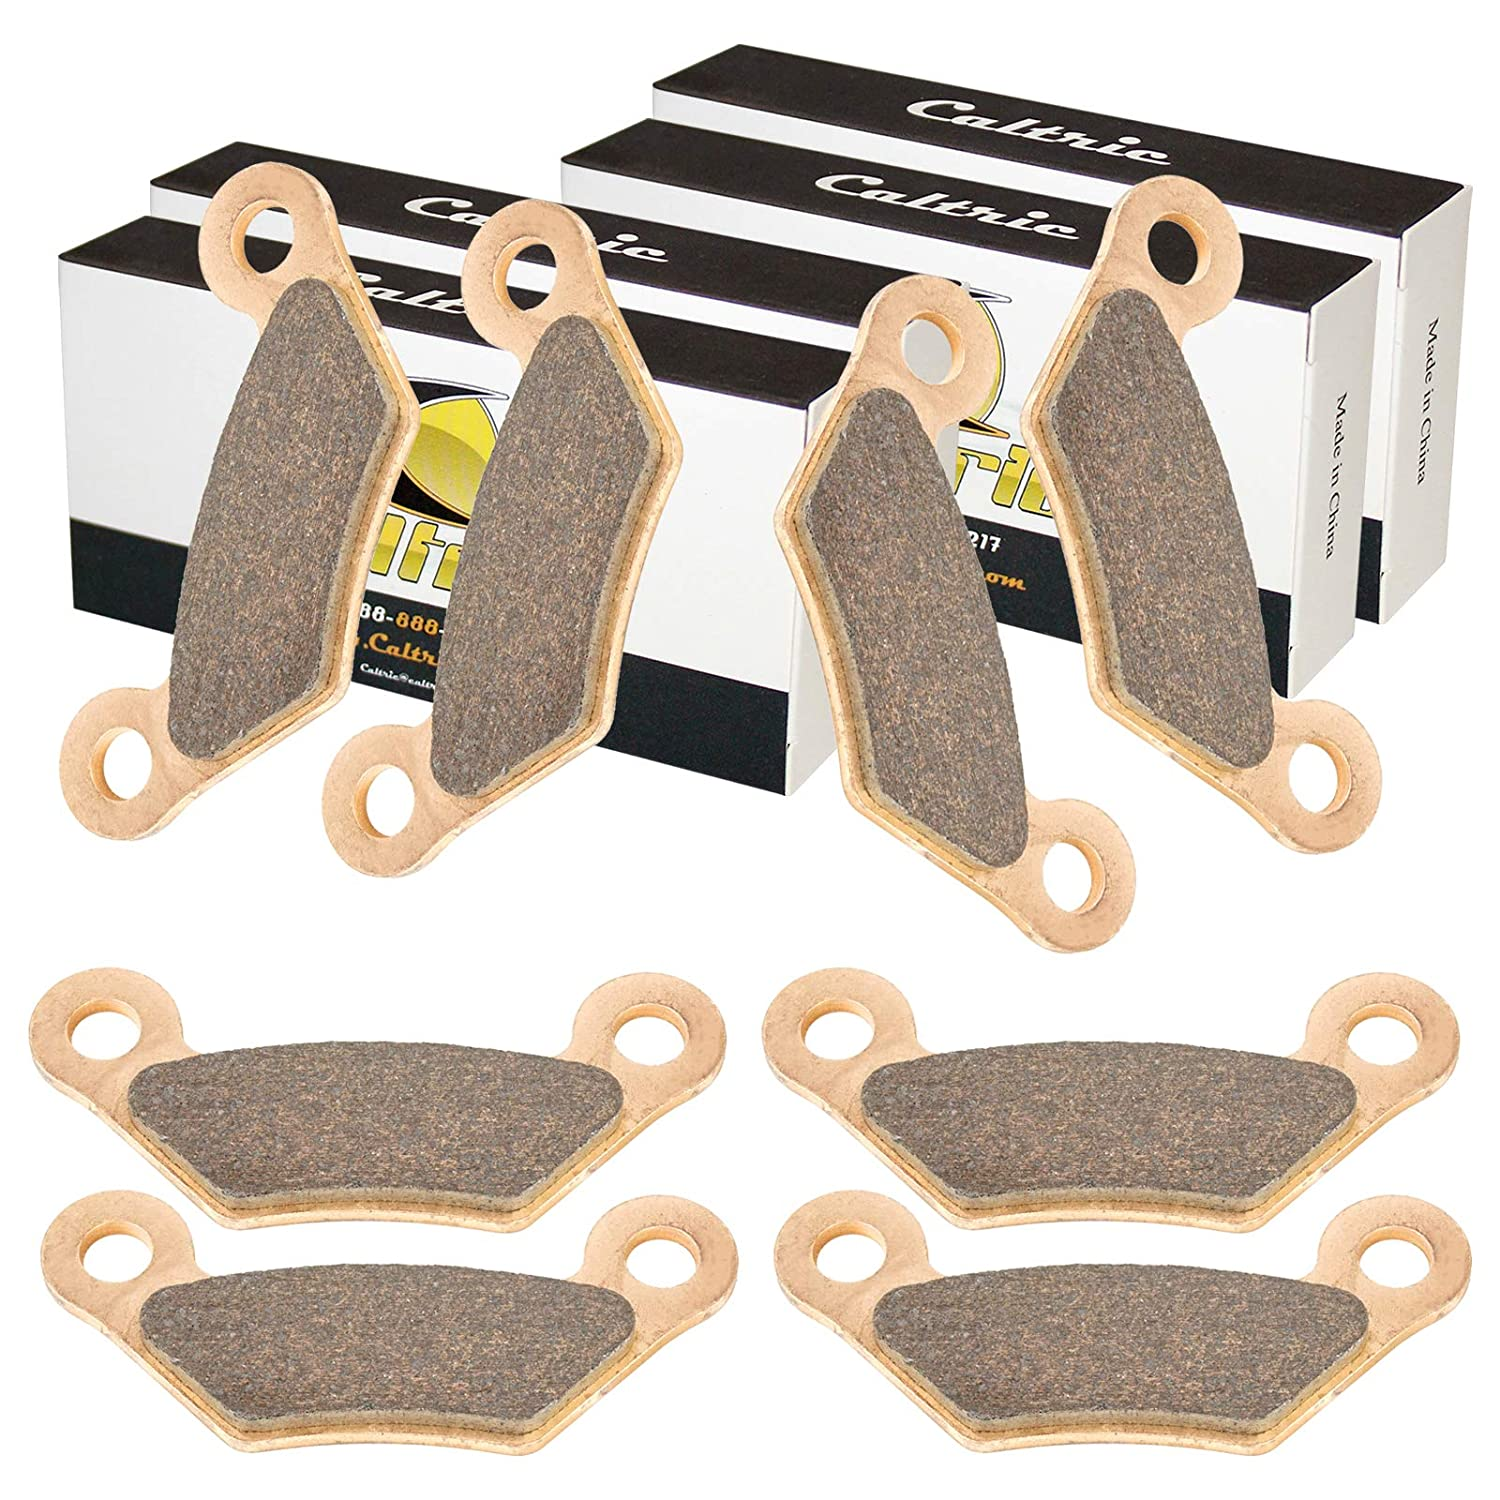 CALTRIC 4 FRONT and REAR BRAKE PADS FIT John Deere 4X2 4X4 Gator HPX Diesel after 090000